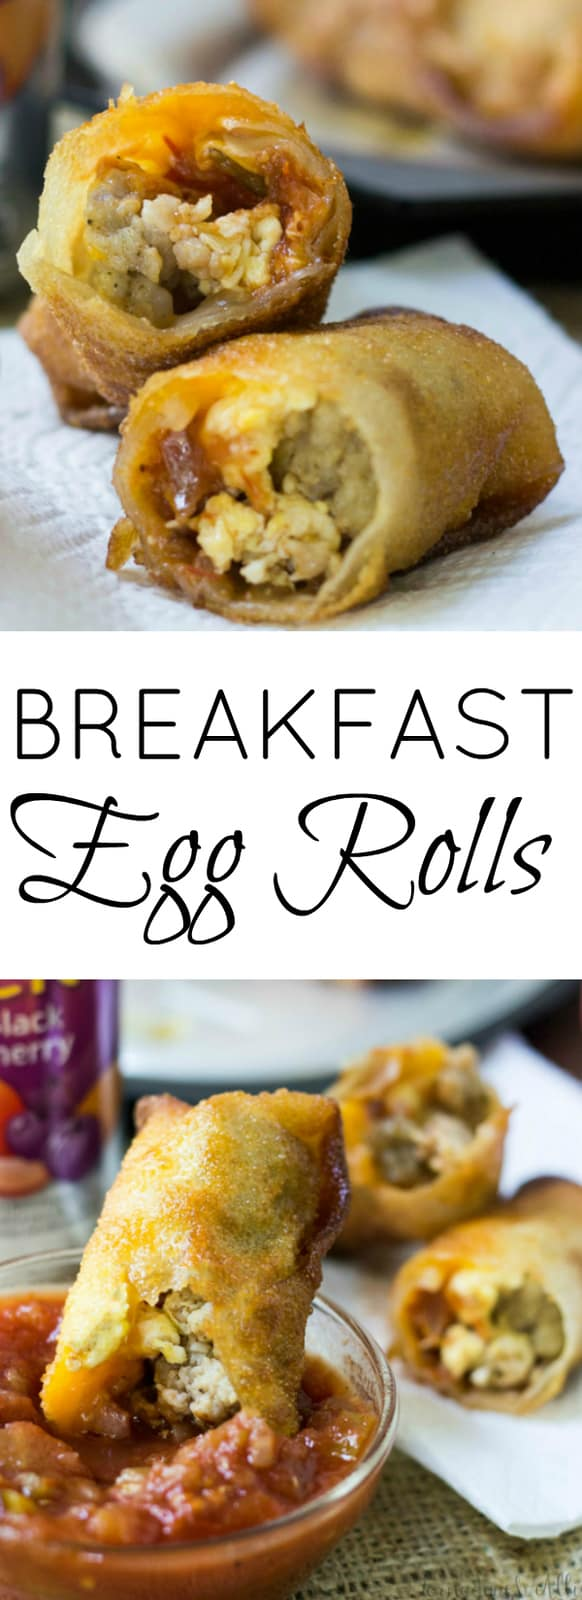 Breakfast Egg Roll Pinterest